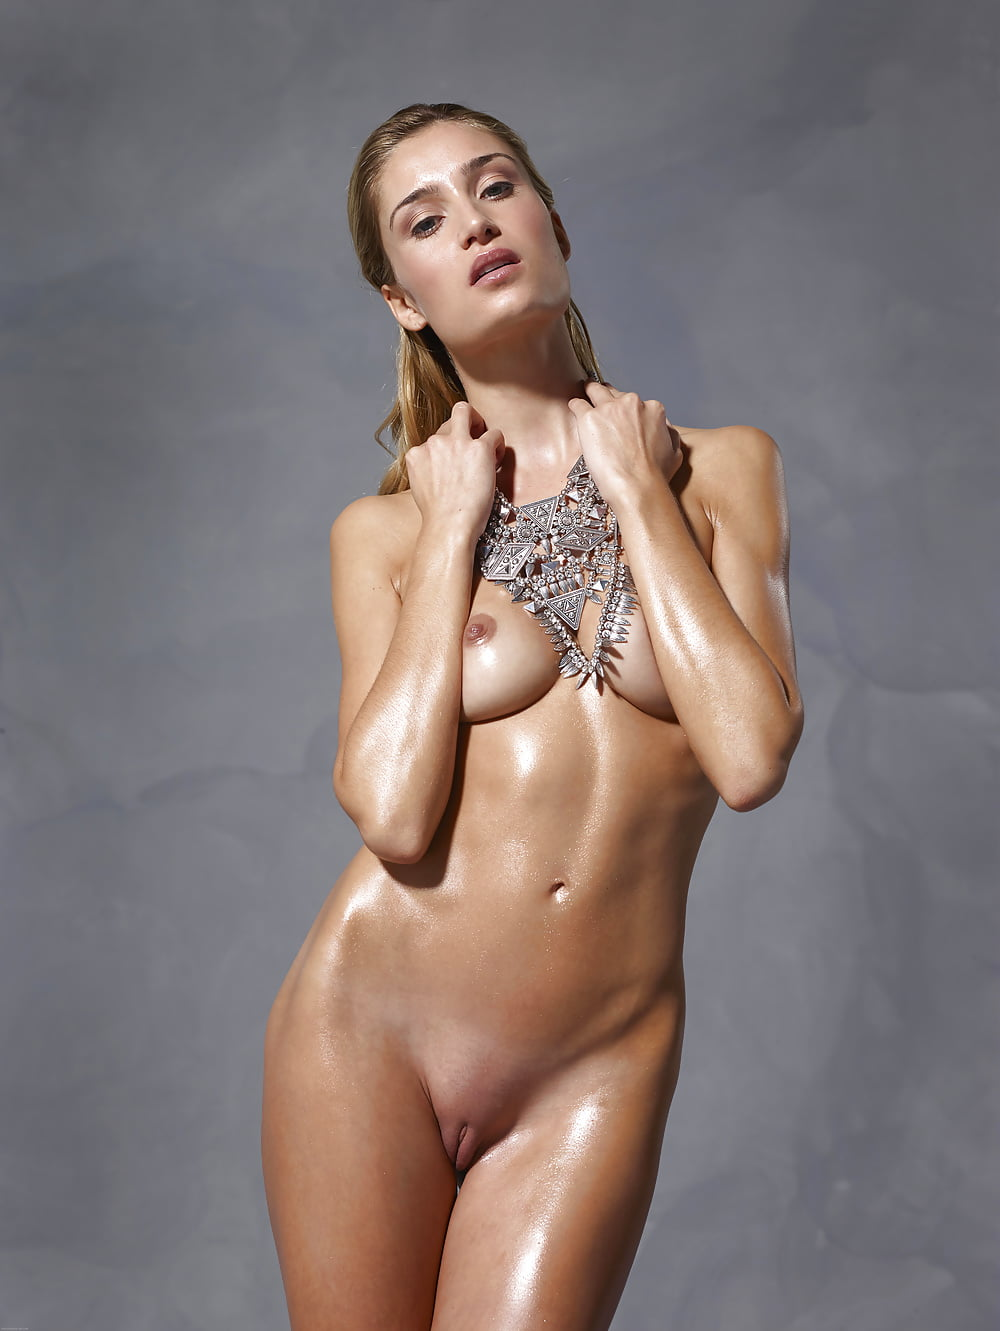 Top model nude pic, girl forced at concert